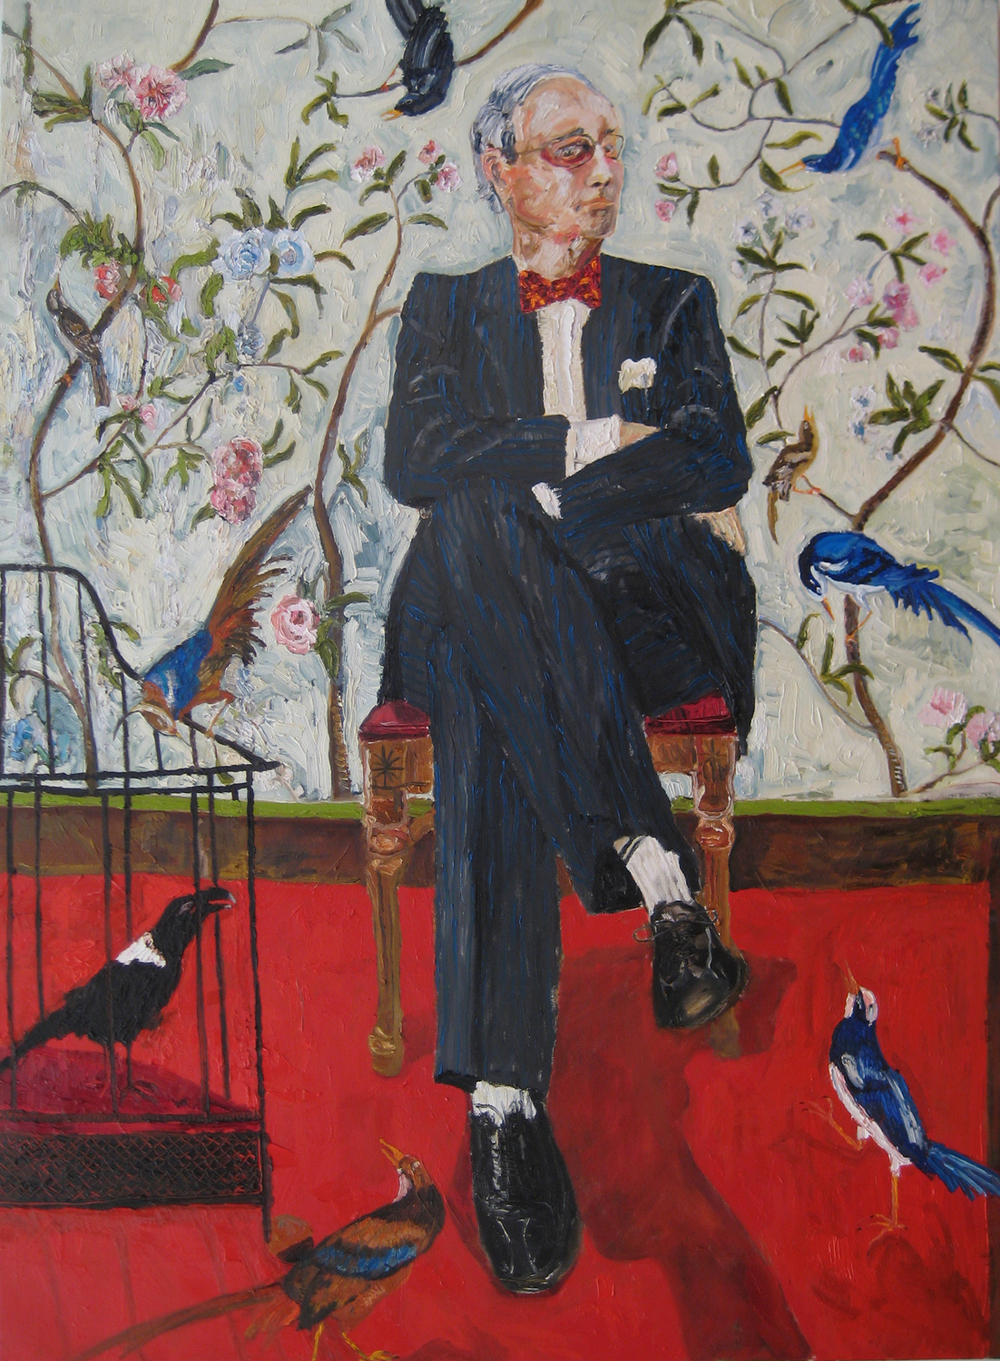 Aldon with Birds #2